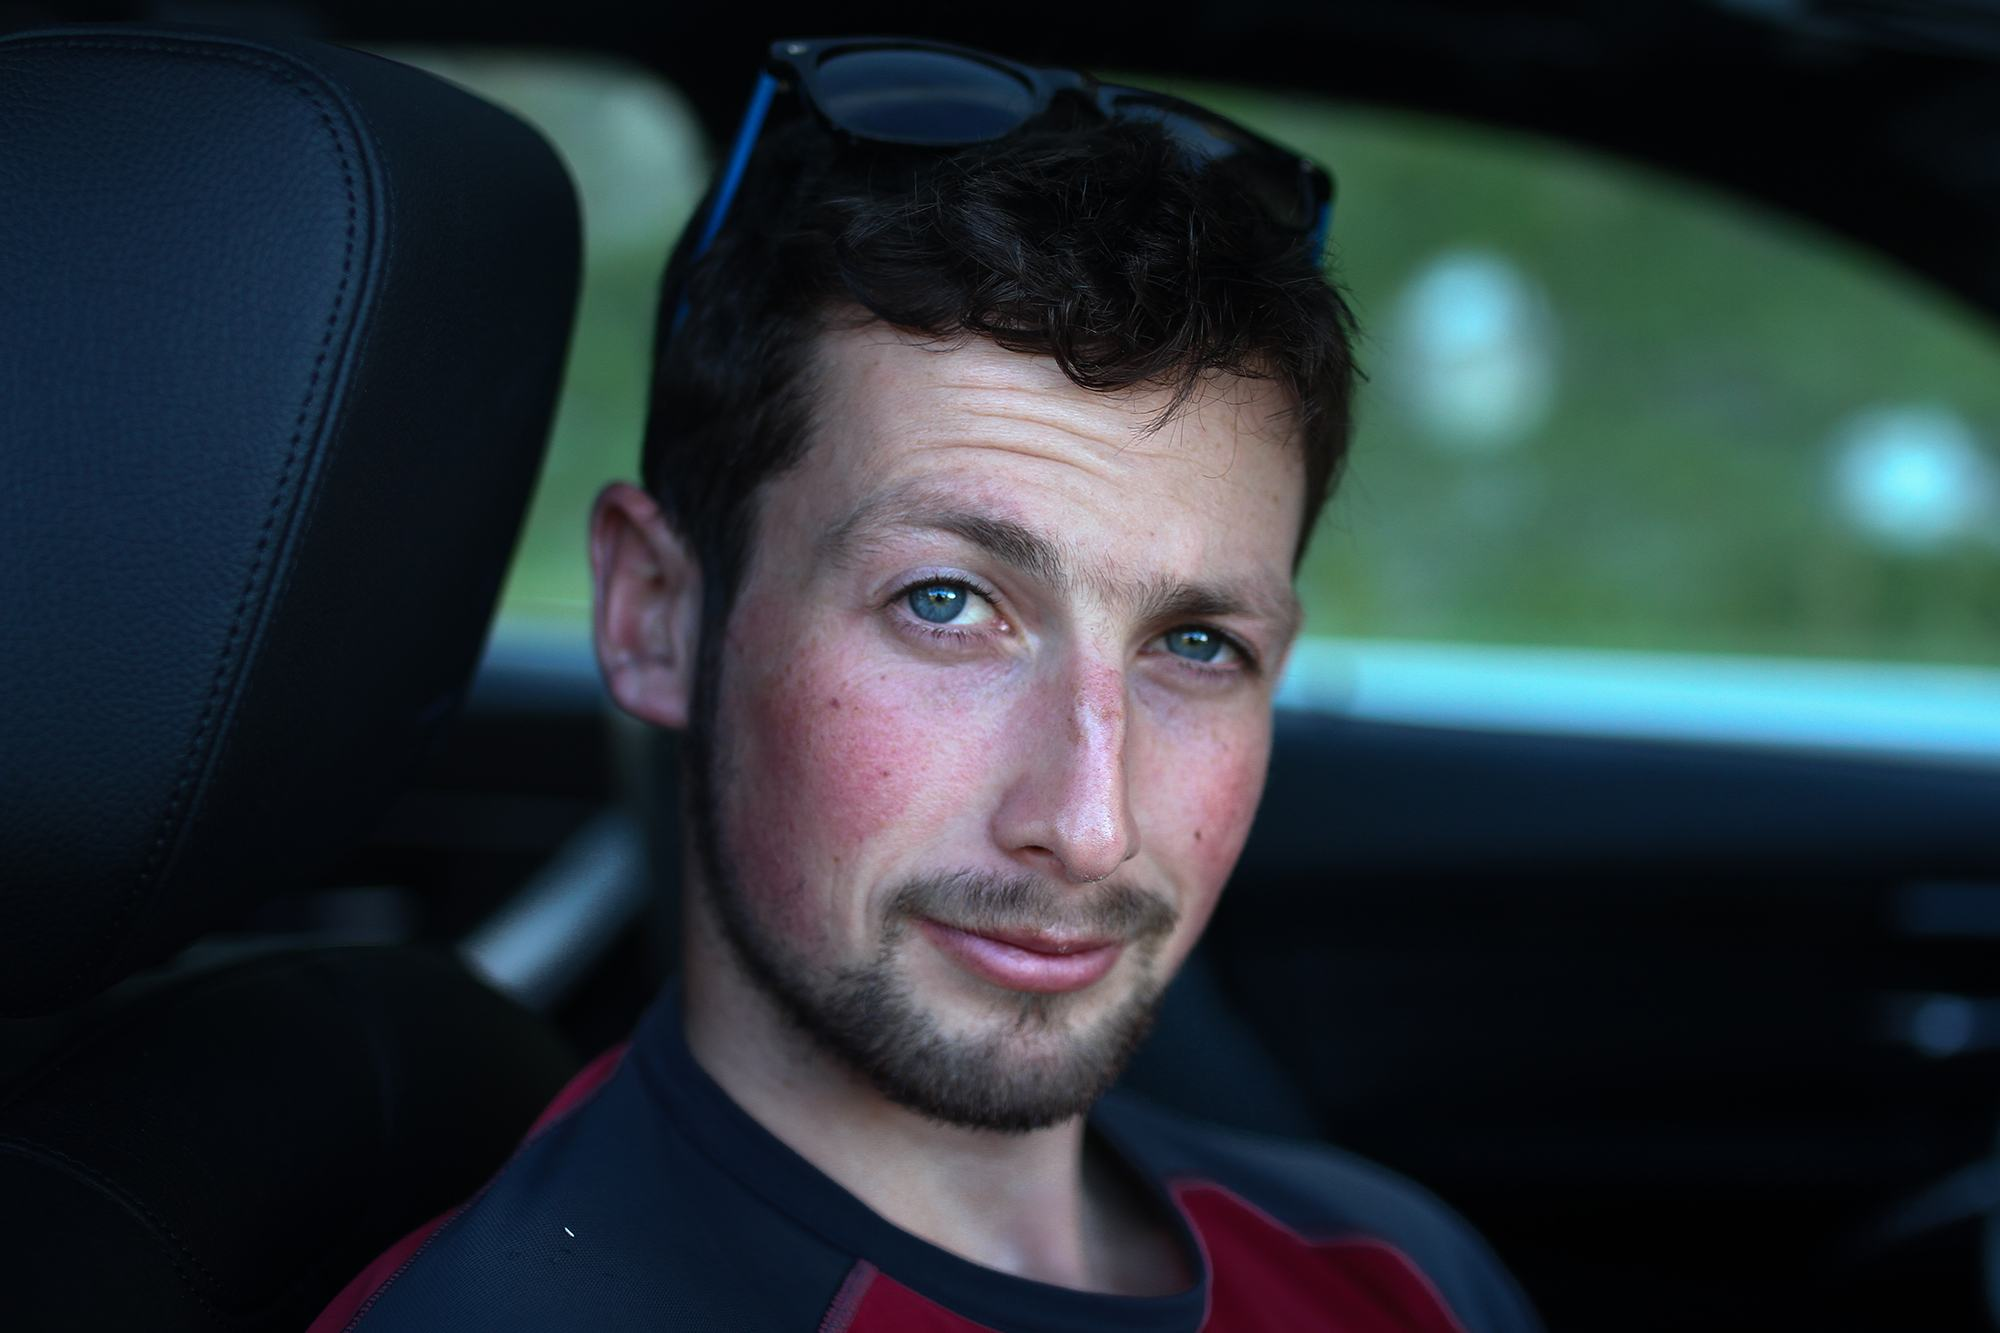 Photograph of Mike Daniels, sat in a car in The Dolomites